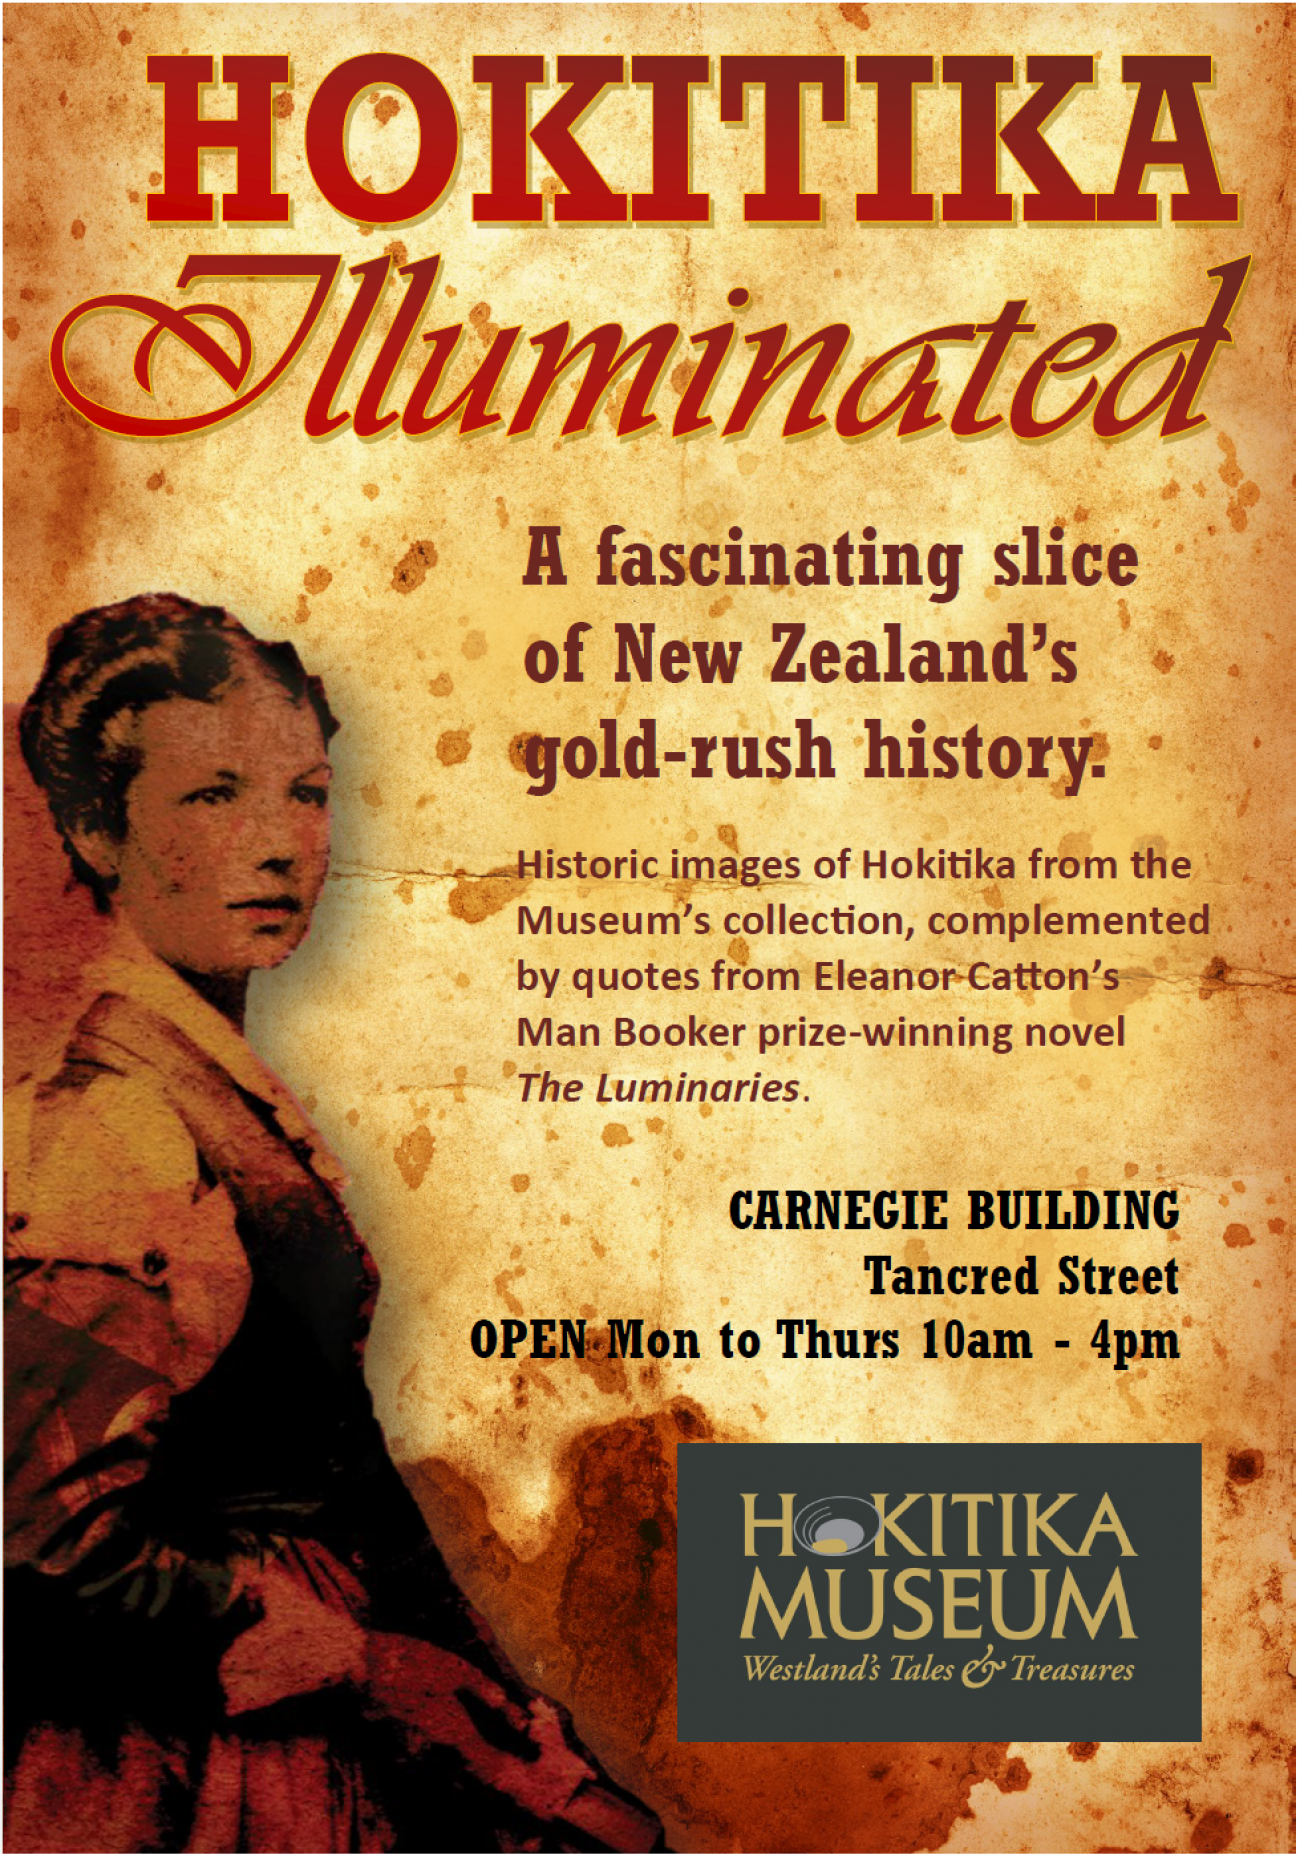 Hokitika Illuminated Exhibition